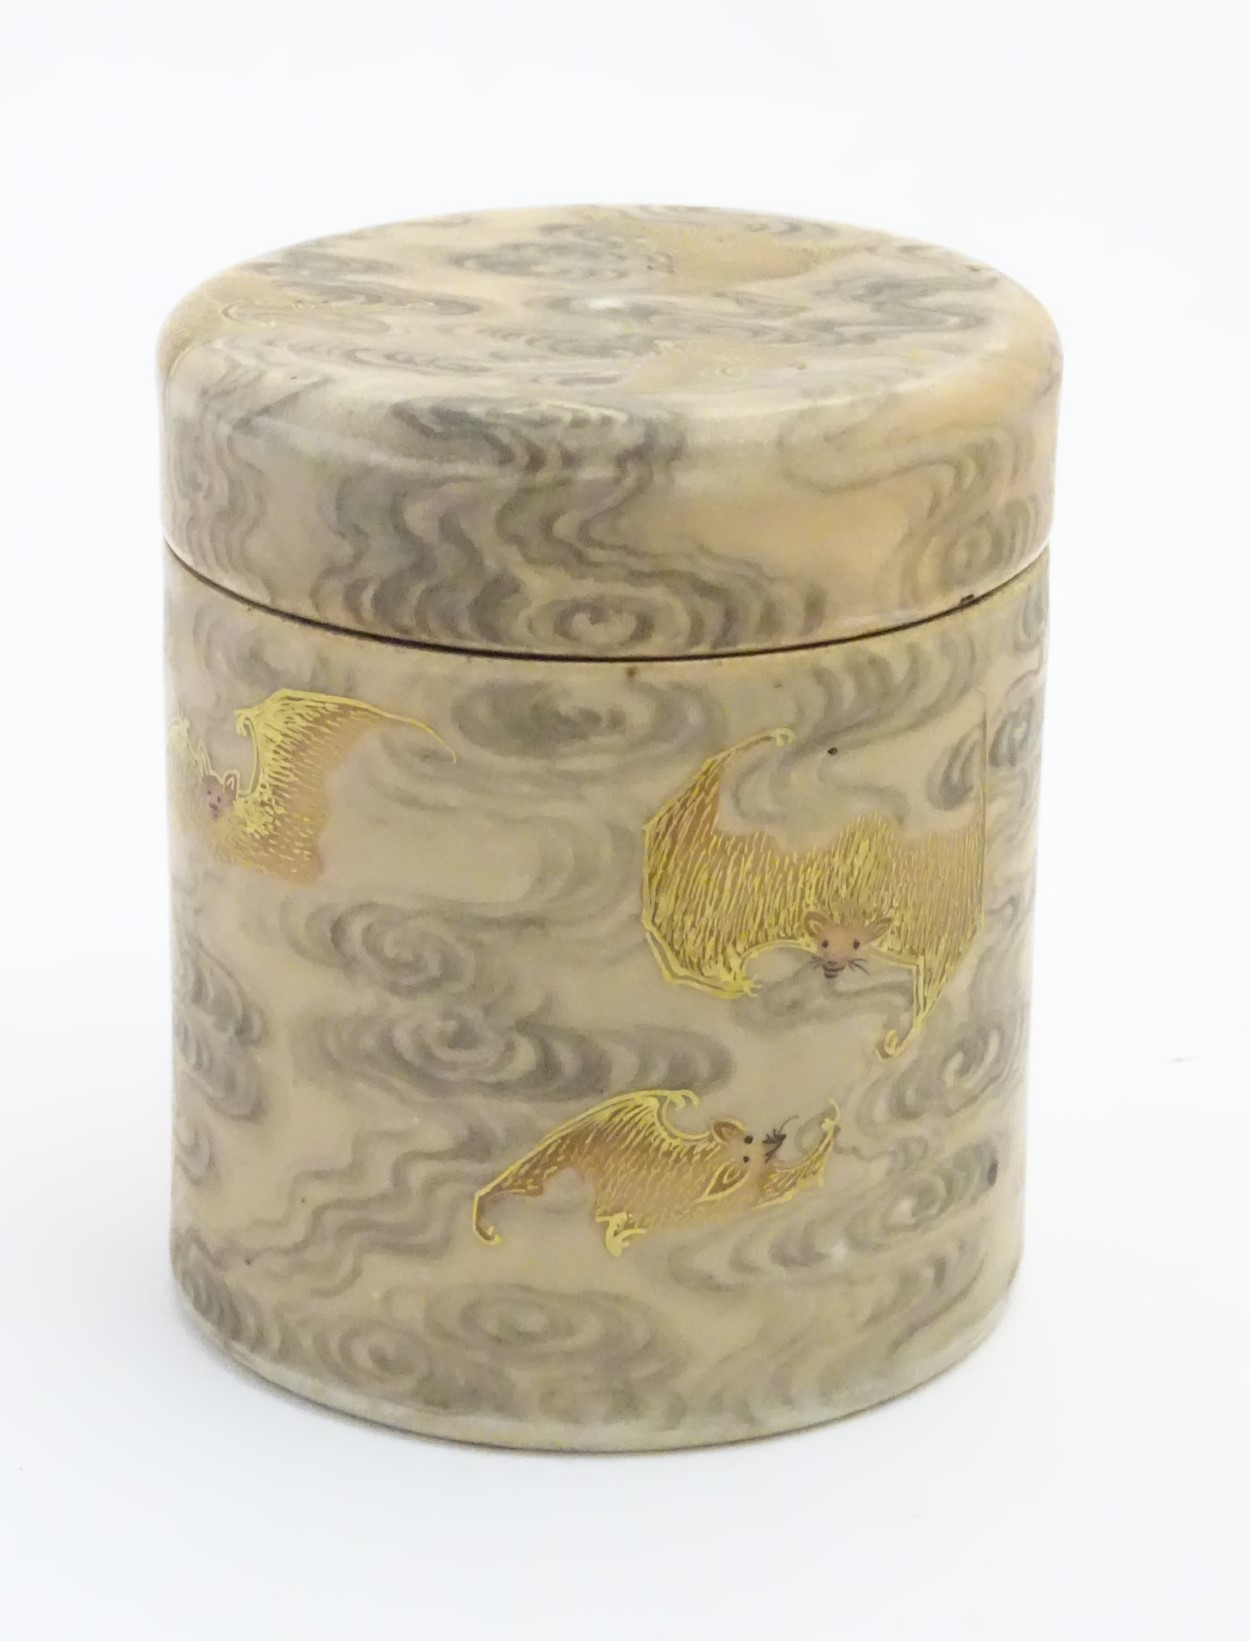 Lot 4 - A Chinese lidded pot decorated with bats in flight with gilt highlights.